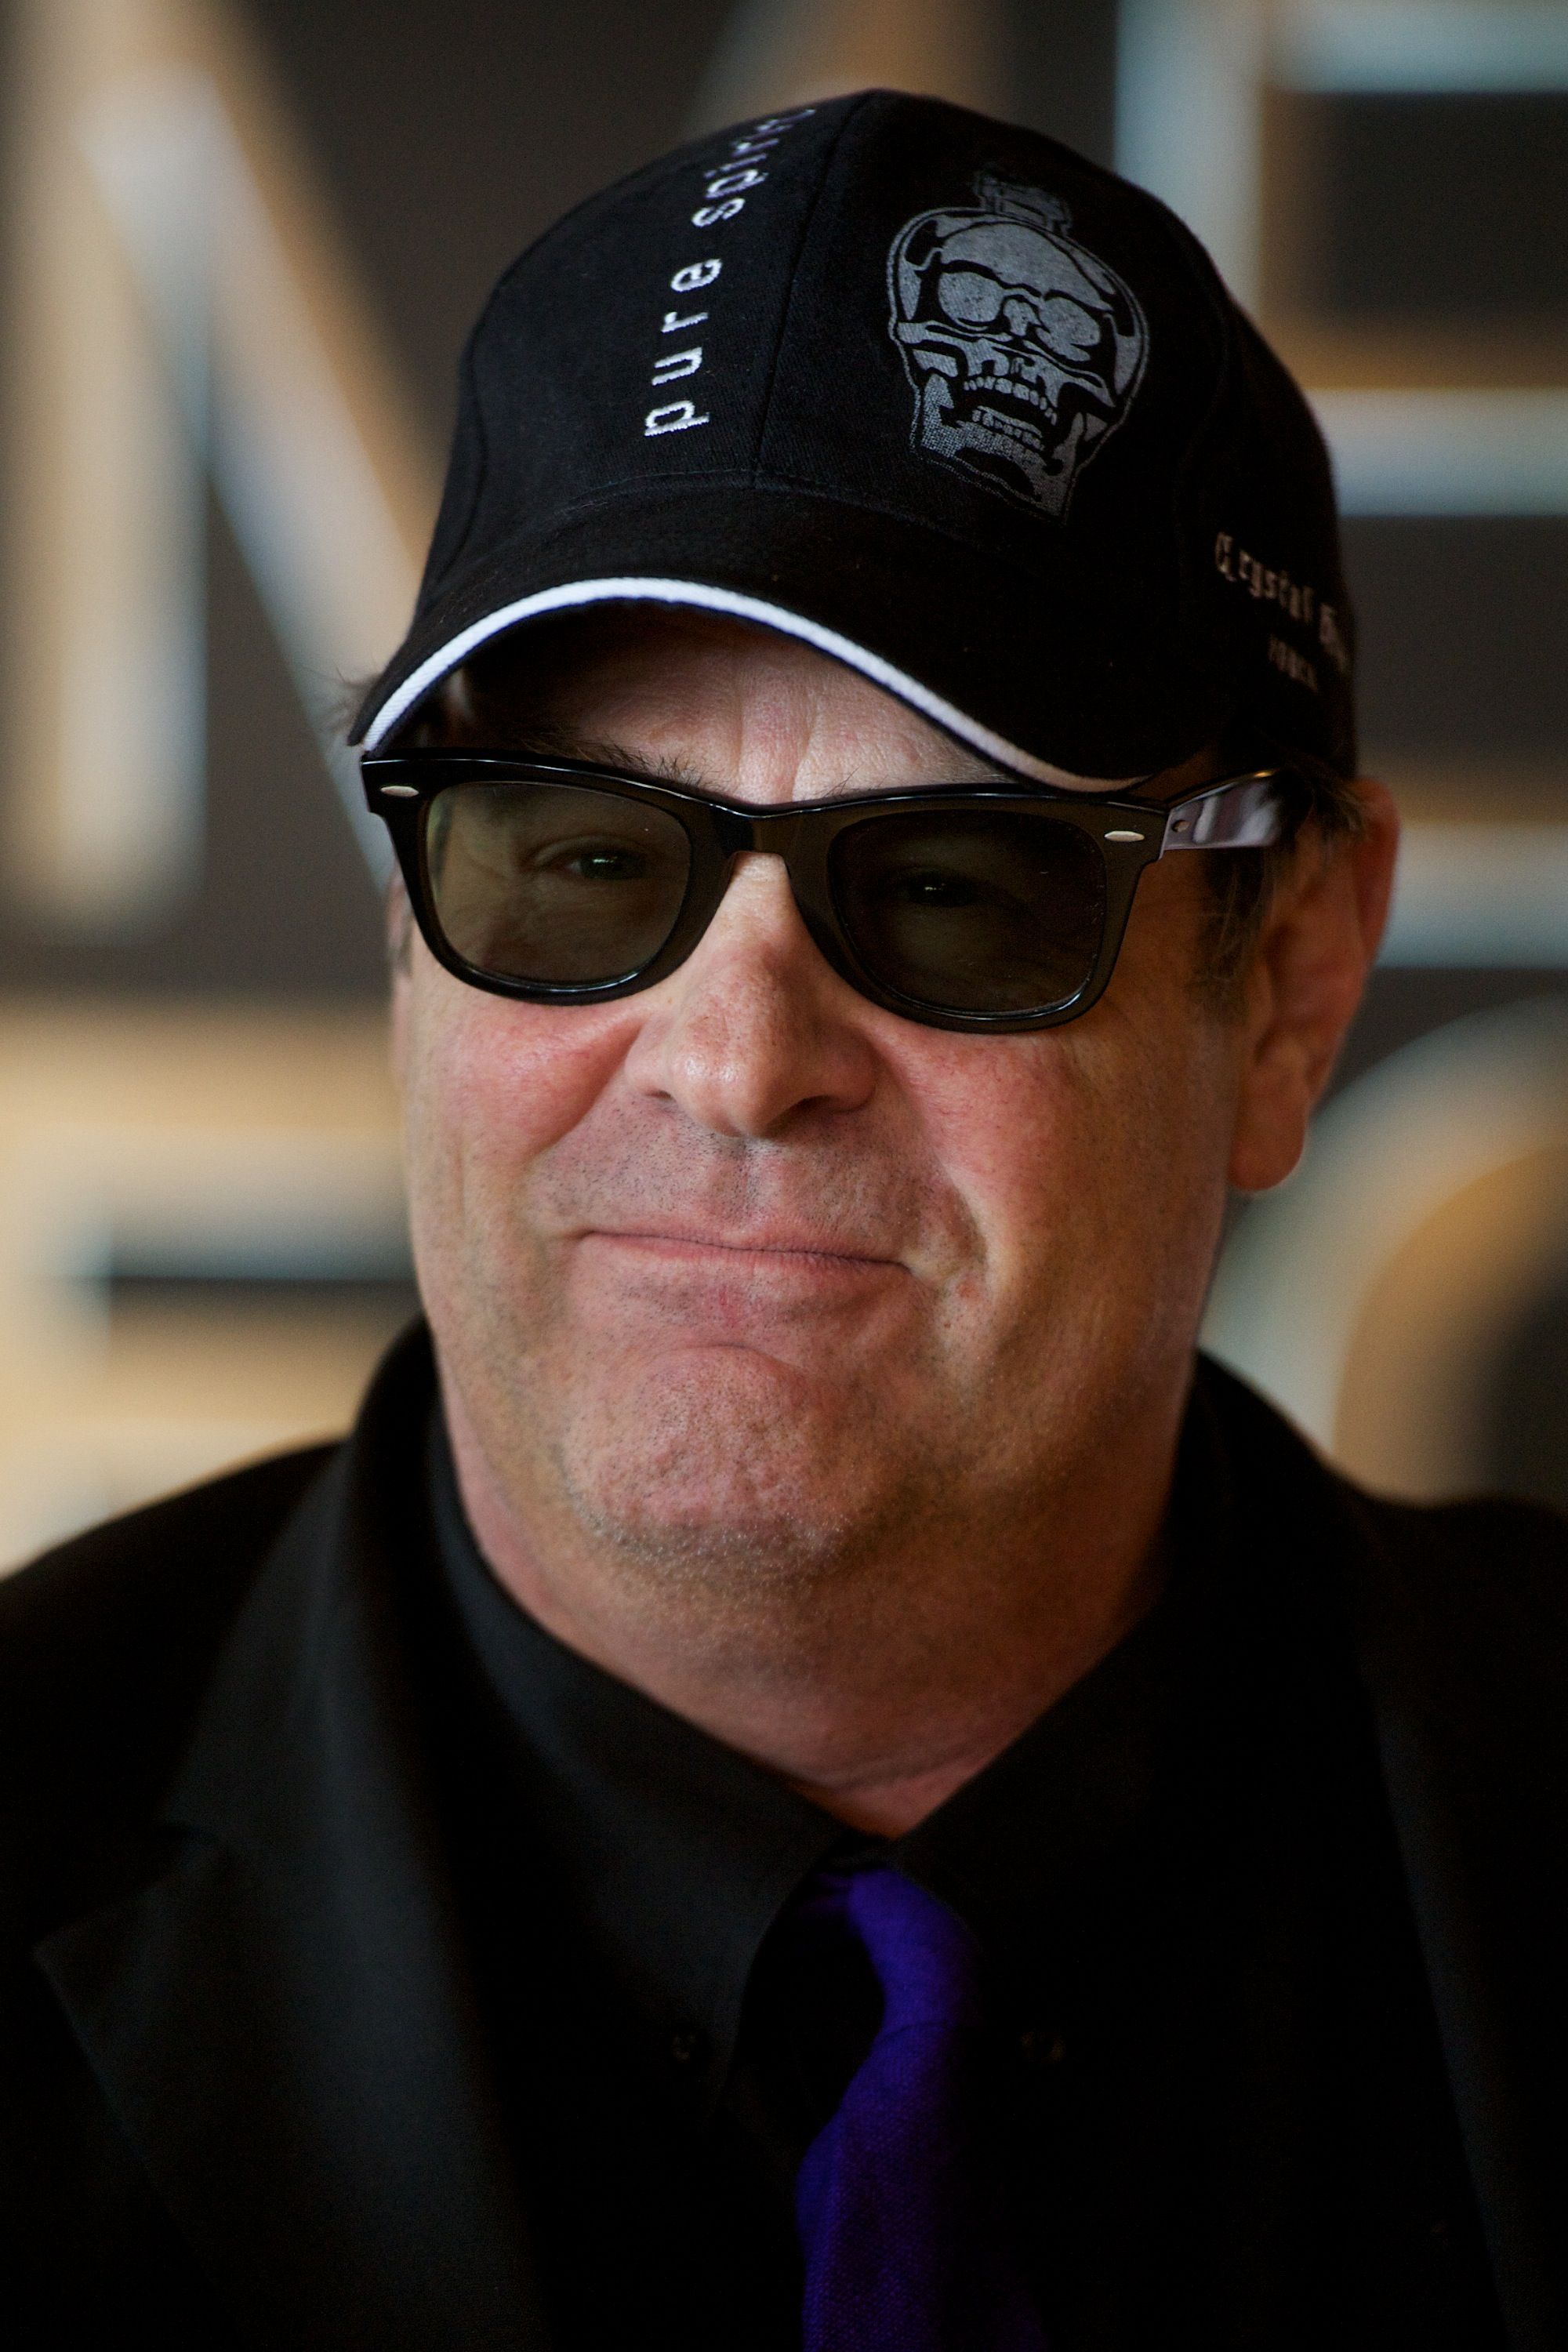 Dan Aykroyd was a member of the Second City comedy troupe in 1973 in both Toronto and Chicago before becoming an SNL original cast member and receiving an Academy Award nomination in 1990 for Best Supporting Actor.